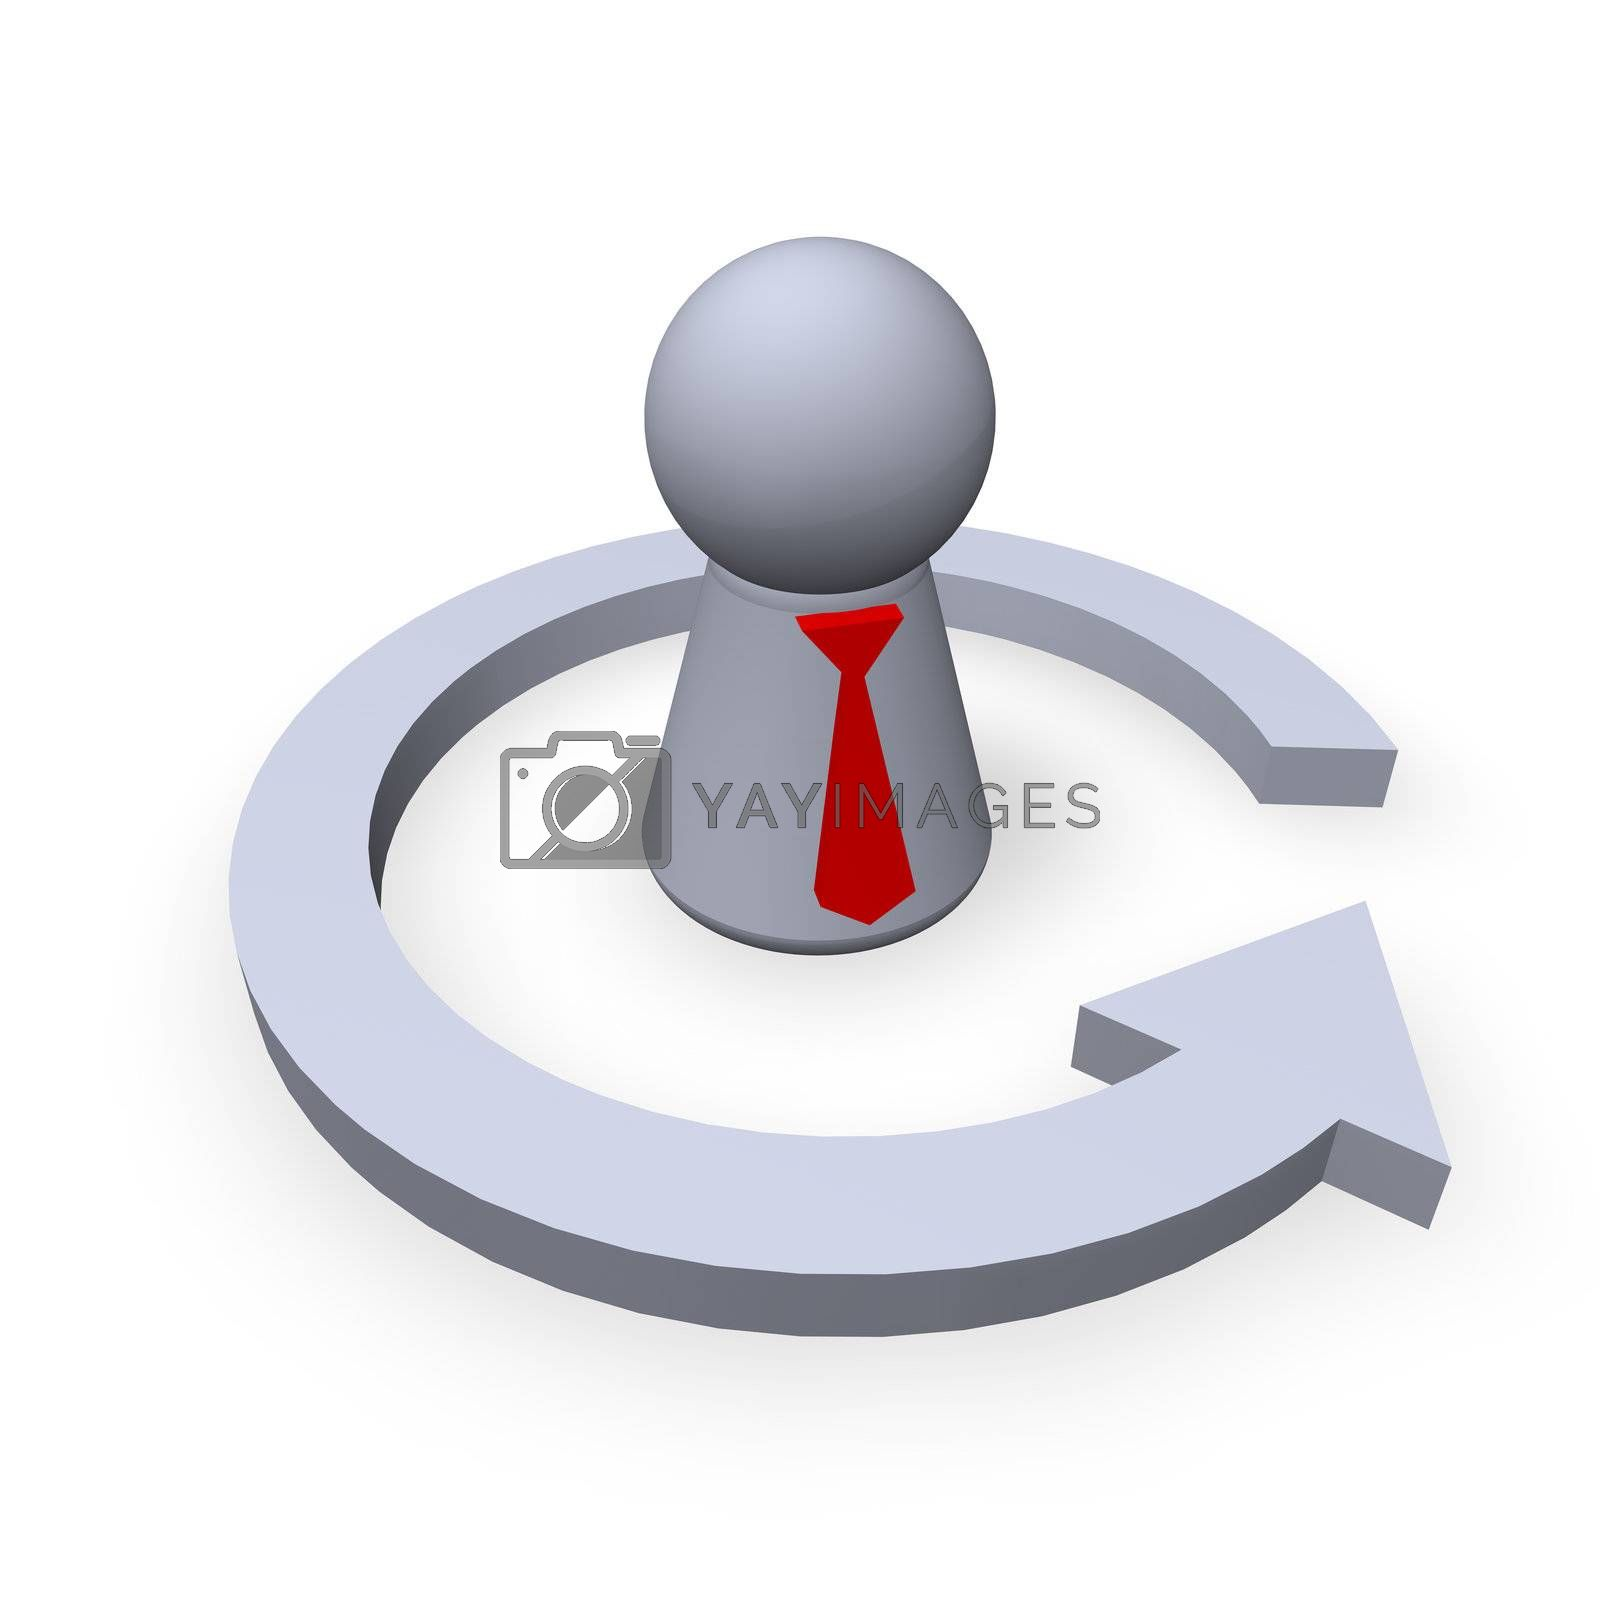 play figure with red tie and circle pointer